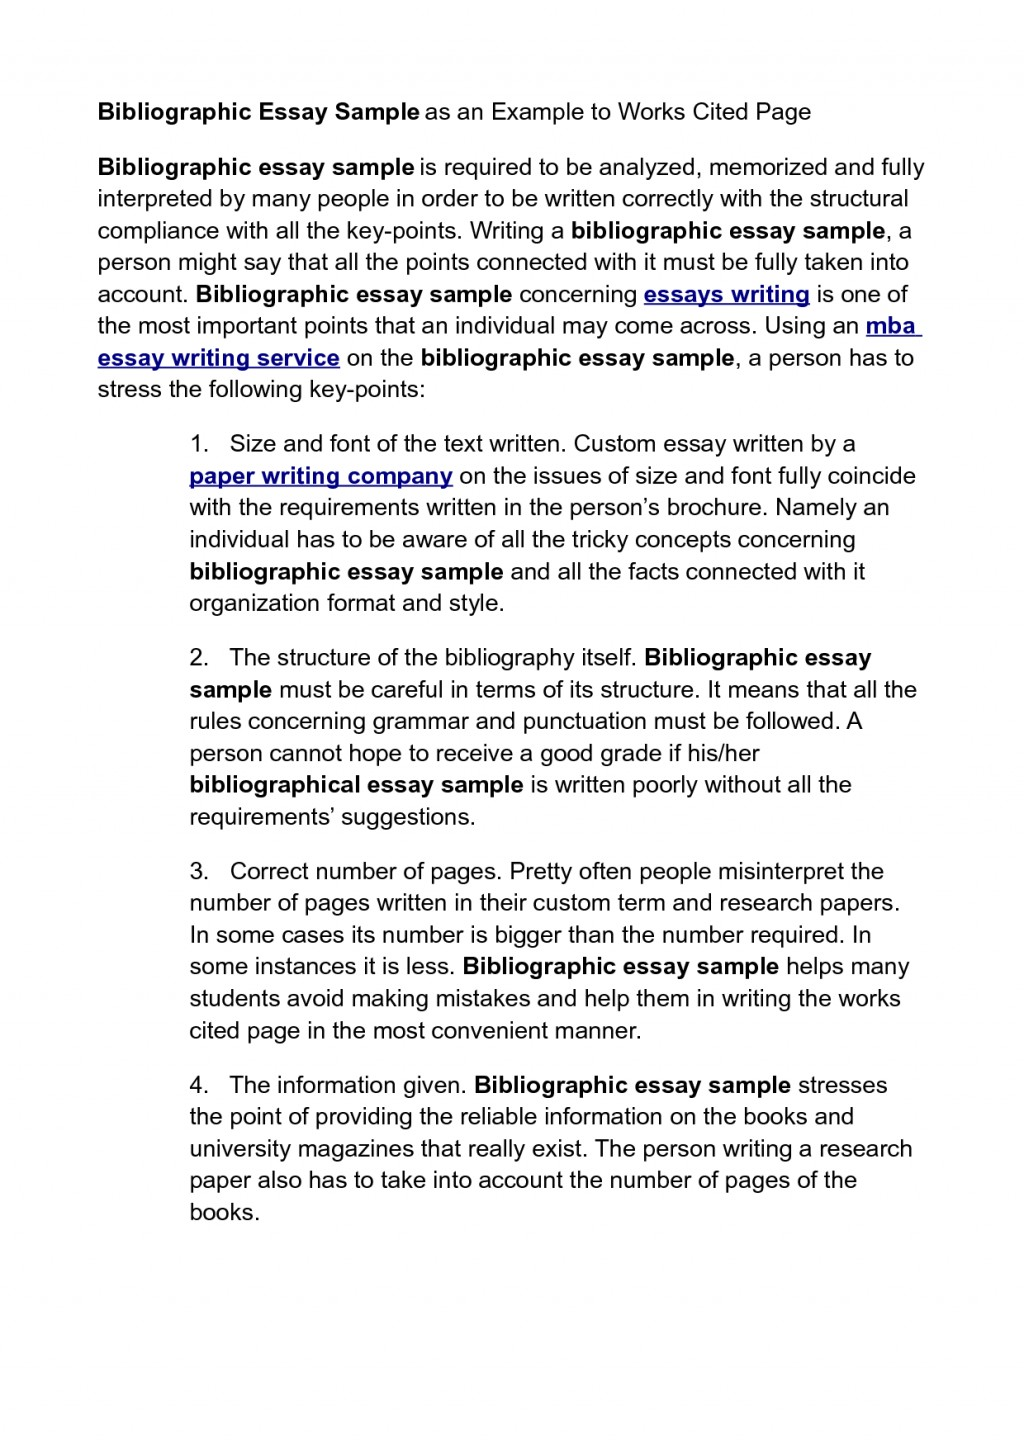 018 How To Cite An Essay Example Sample Persuasive With Works Cited Of Mla L Archaicawful In A Book 8th Edition Work Format Within Apa Large